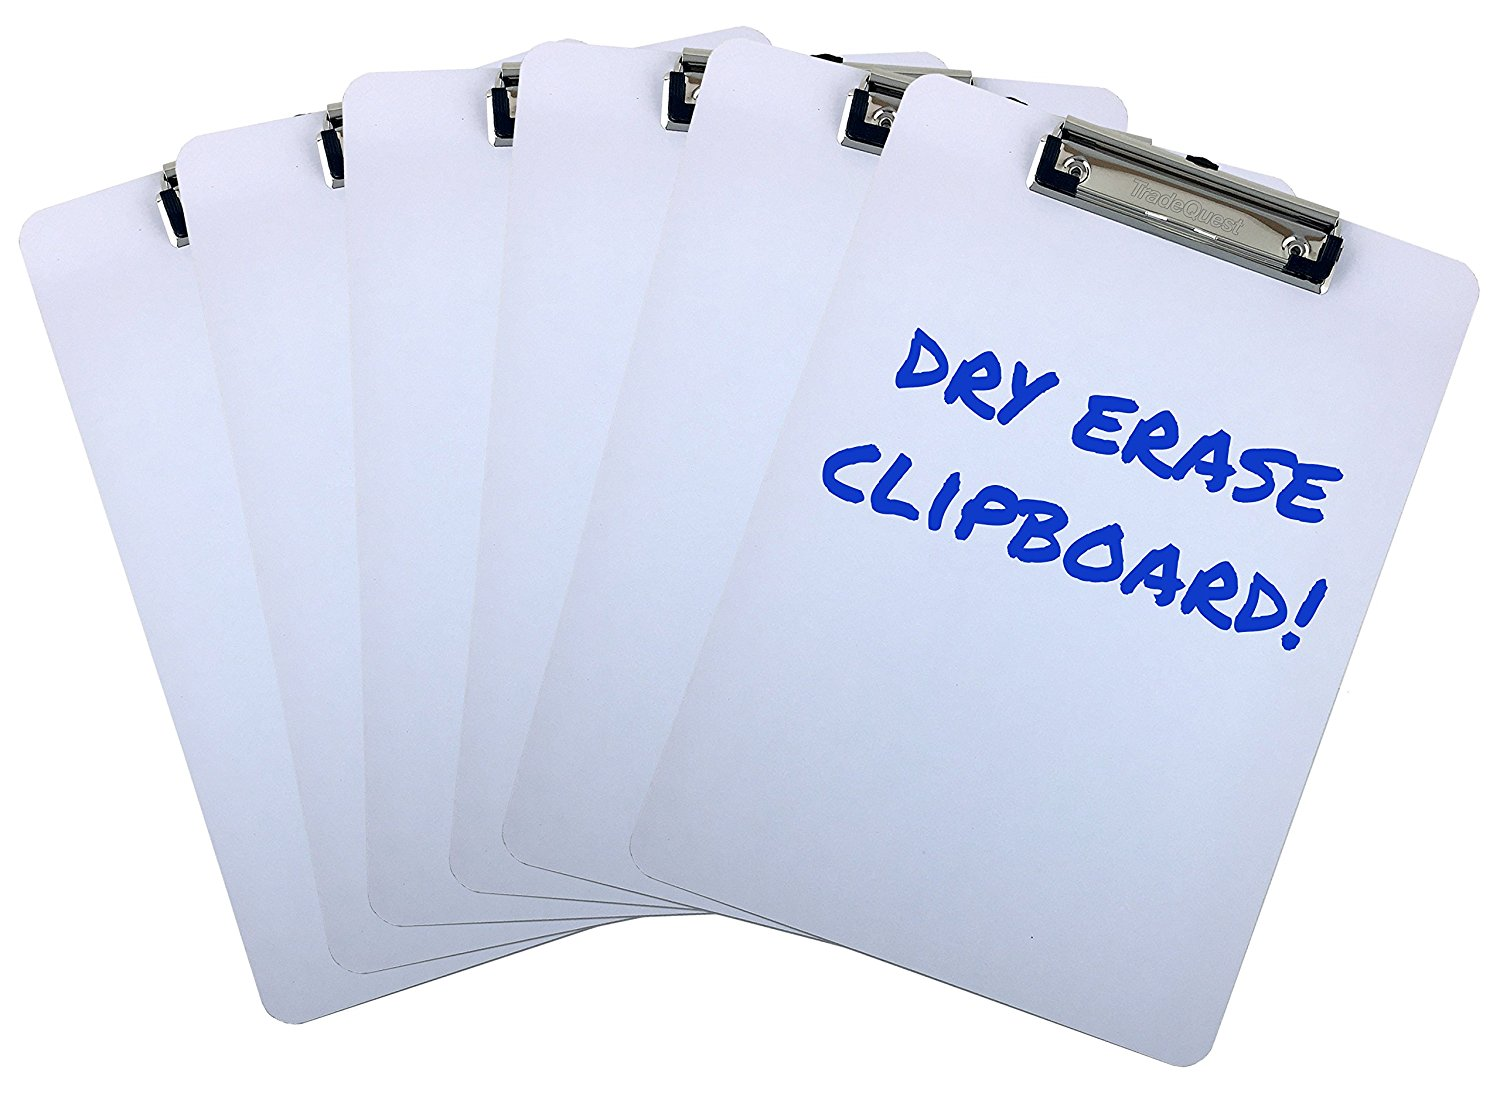 clipboards dry erase surface 9 x 12 5 letter size low profile clip whiteboard pack of 6